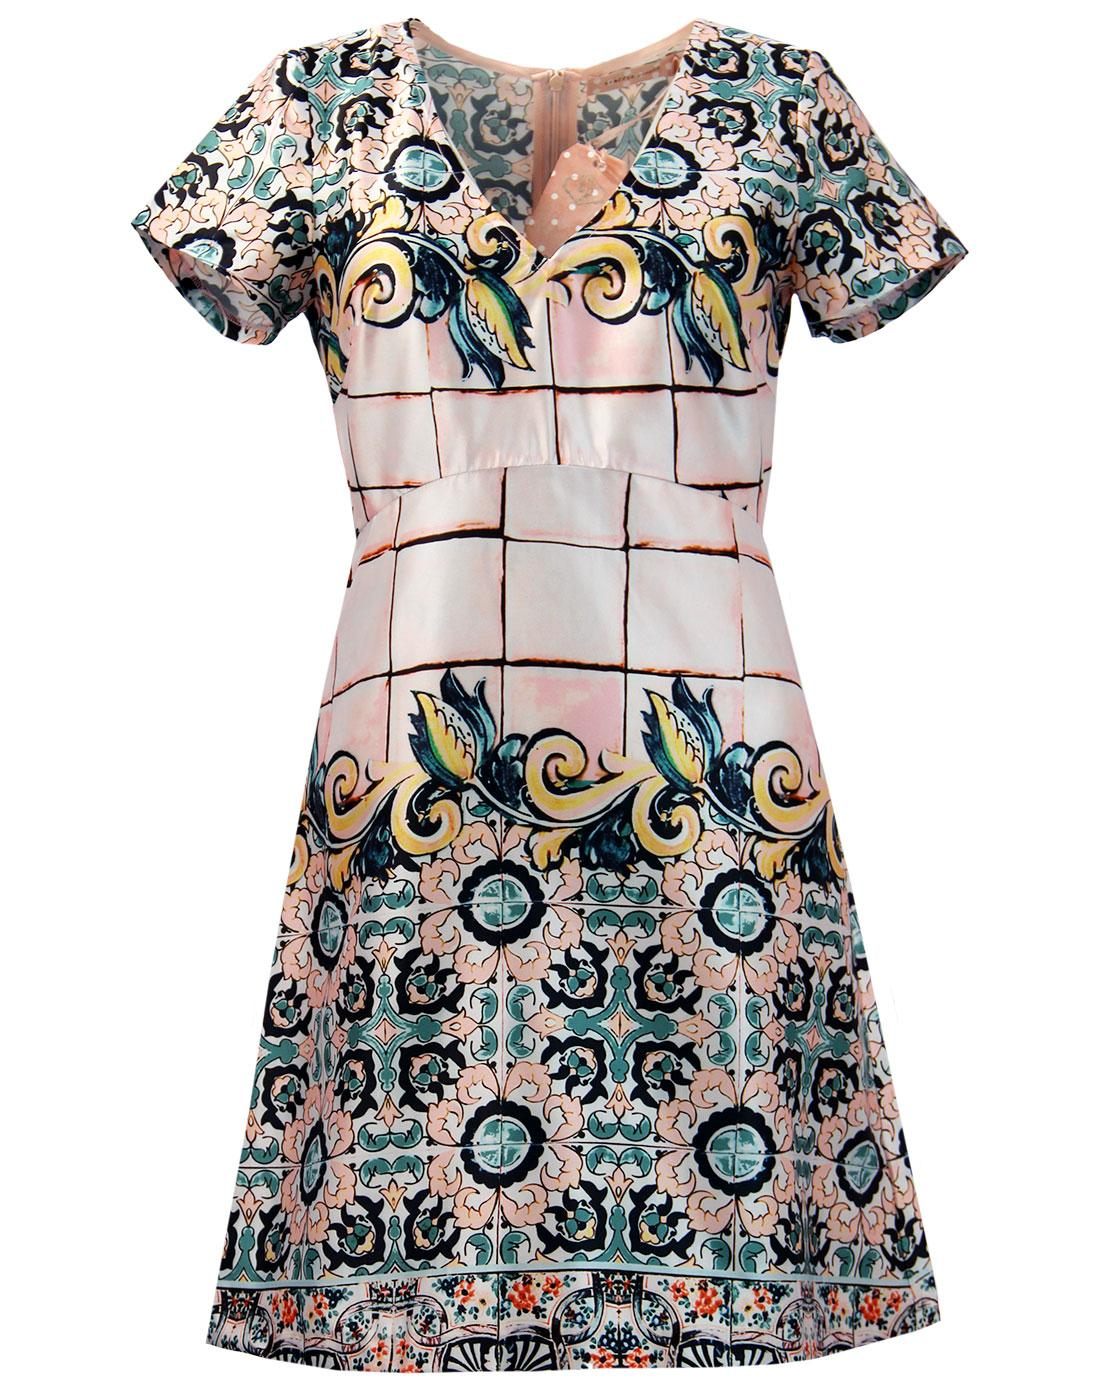 Hi Jinks TRAFFIC PEOPLE Retro Floral Mosaic Dress